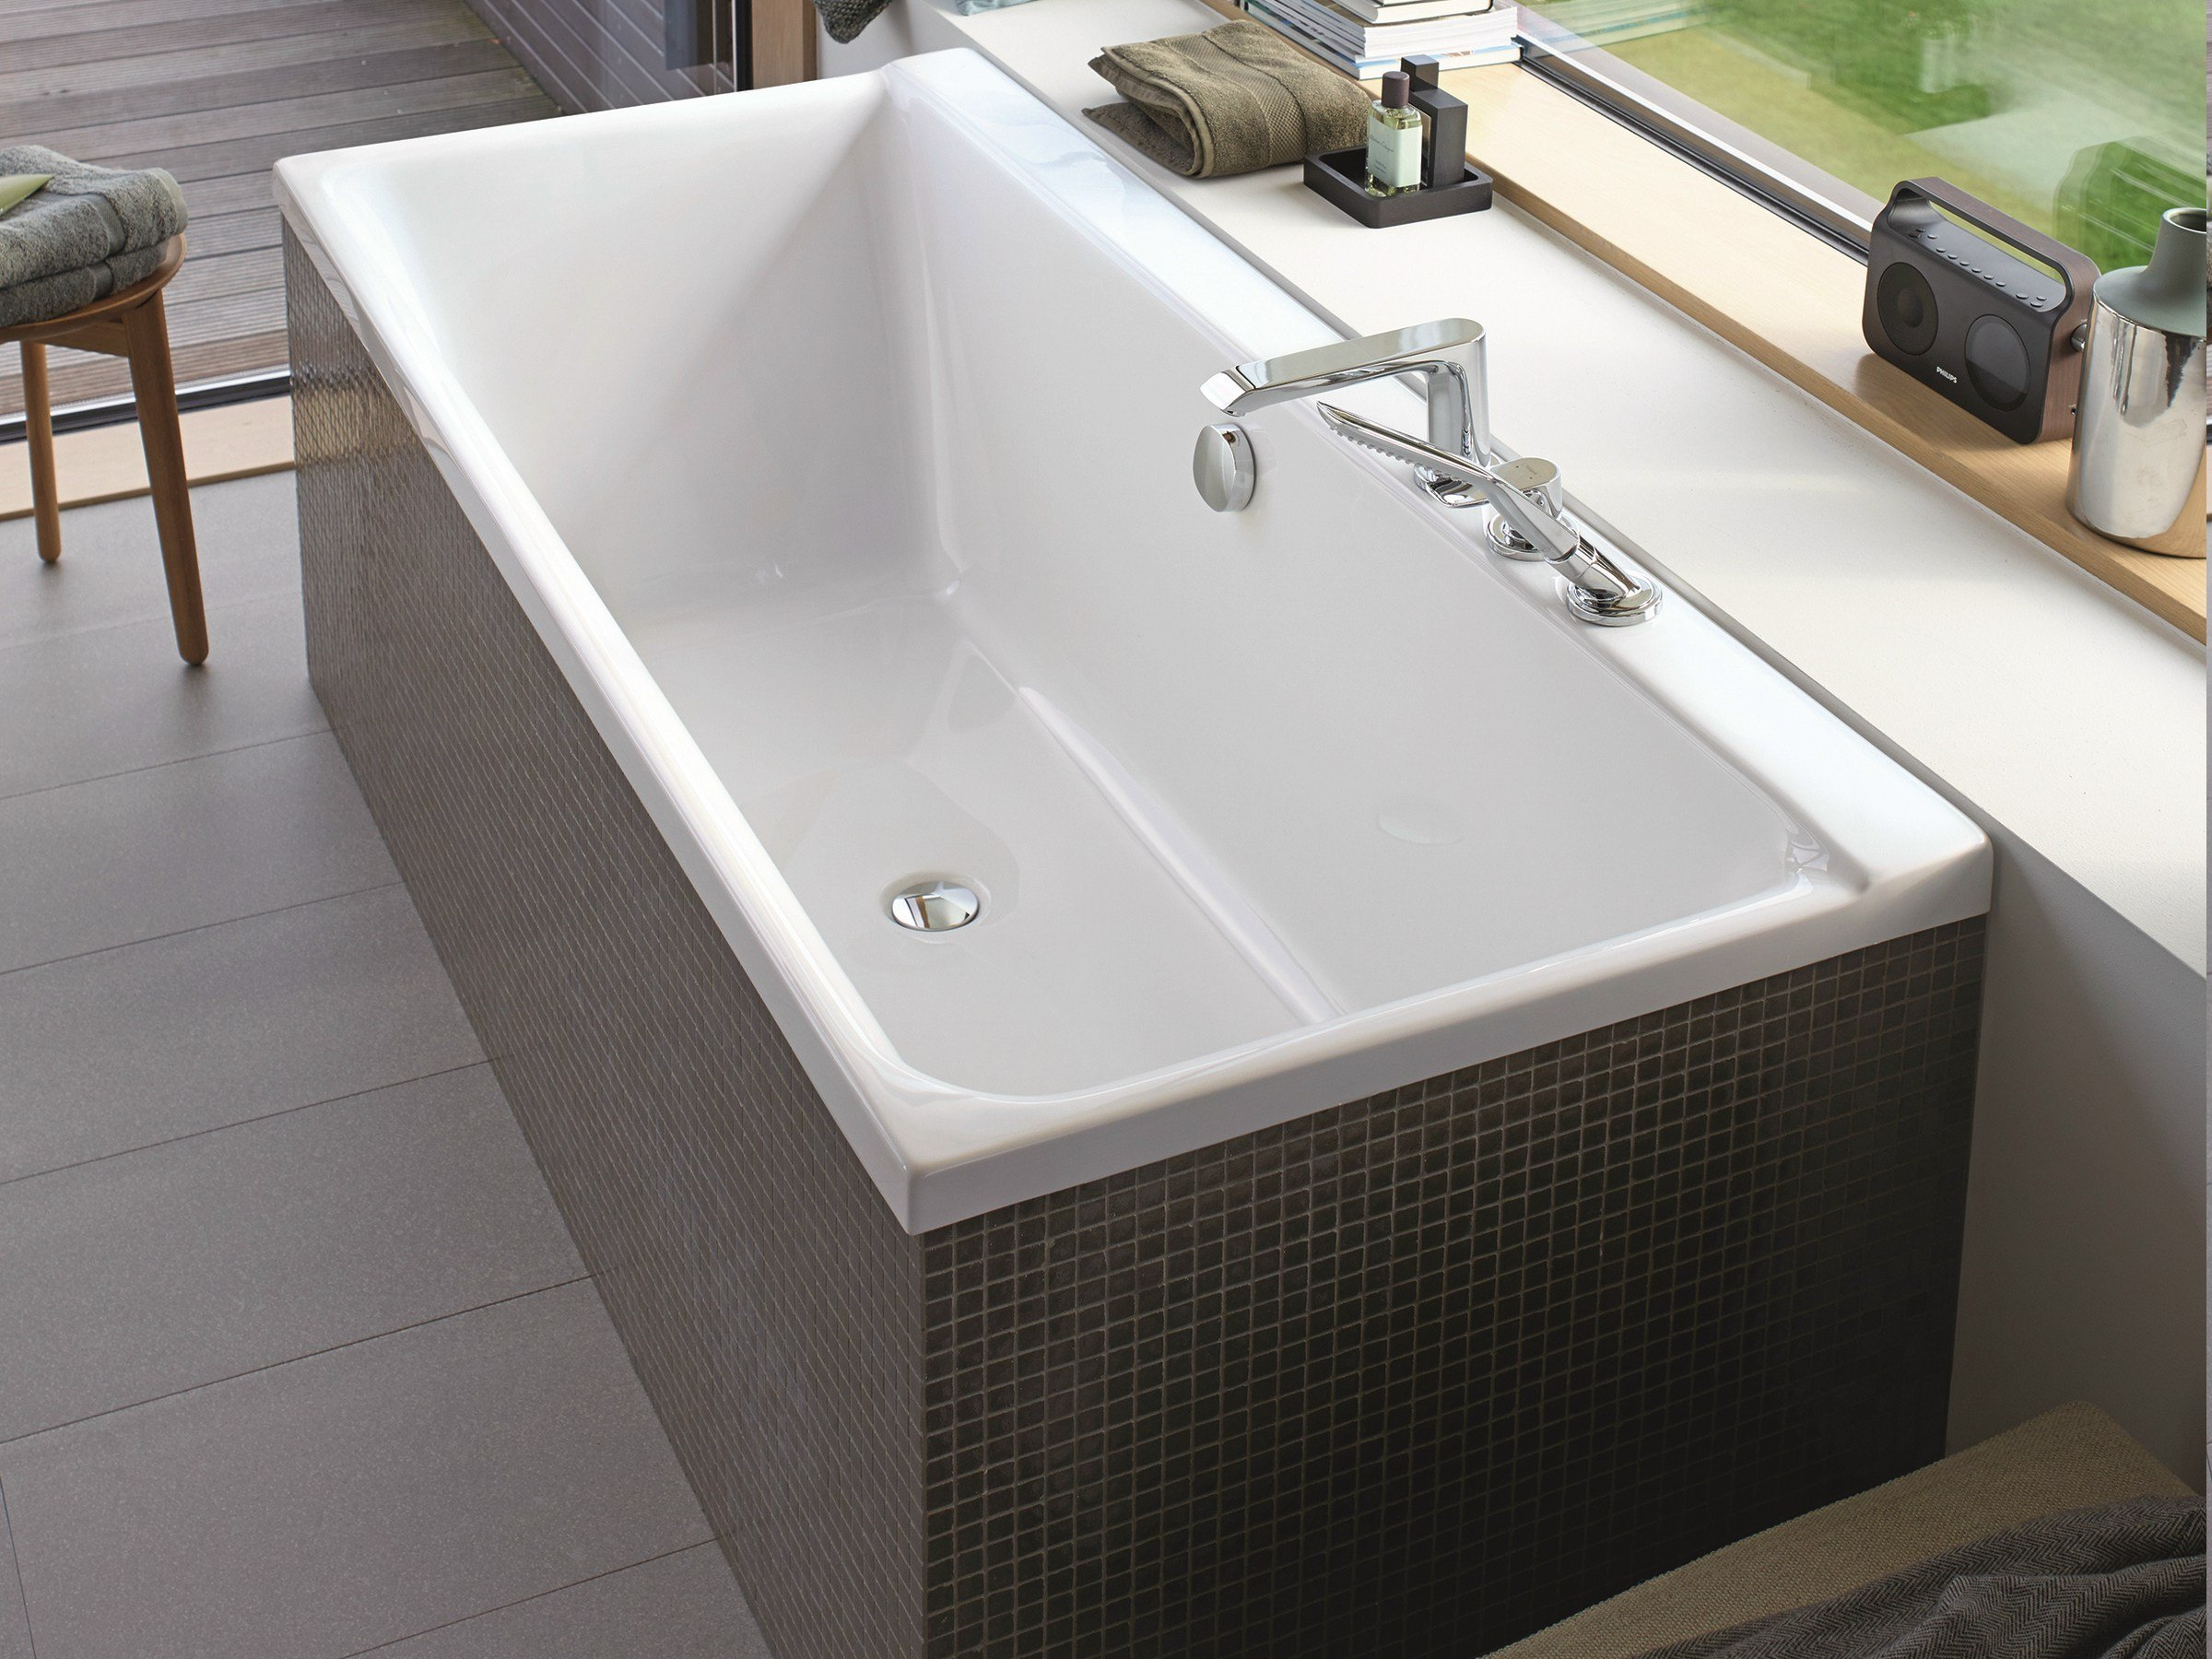 p3 comforts bathtub by duravit italia design phoenix design. Black Bedroom Furniture Sets. Home Design Ideas